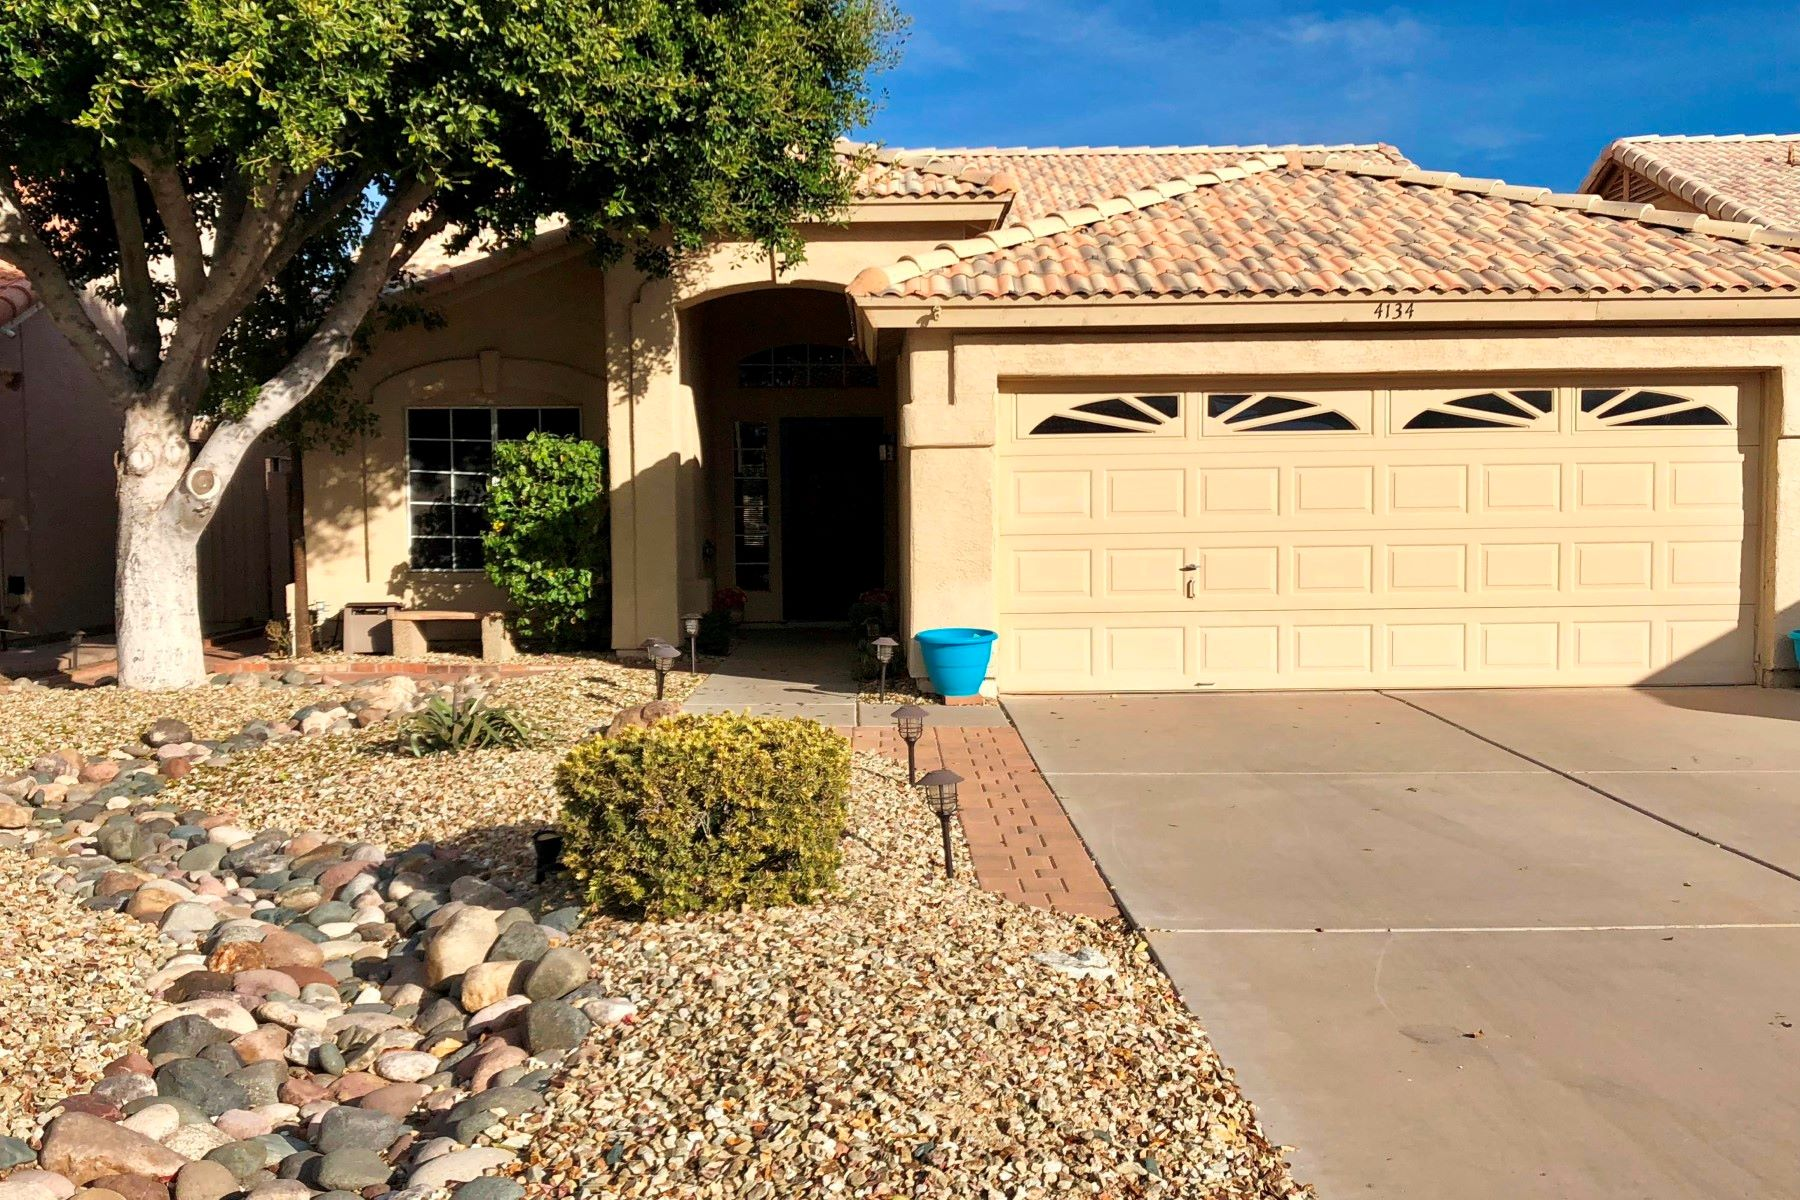 Single Family Home for Rent at Great home in perfect location 4134 W Electra LN Glendale, Arizona 85310 United States